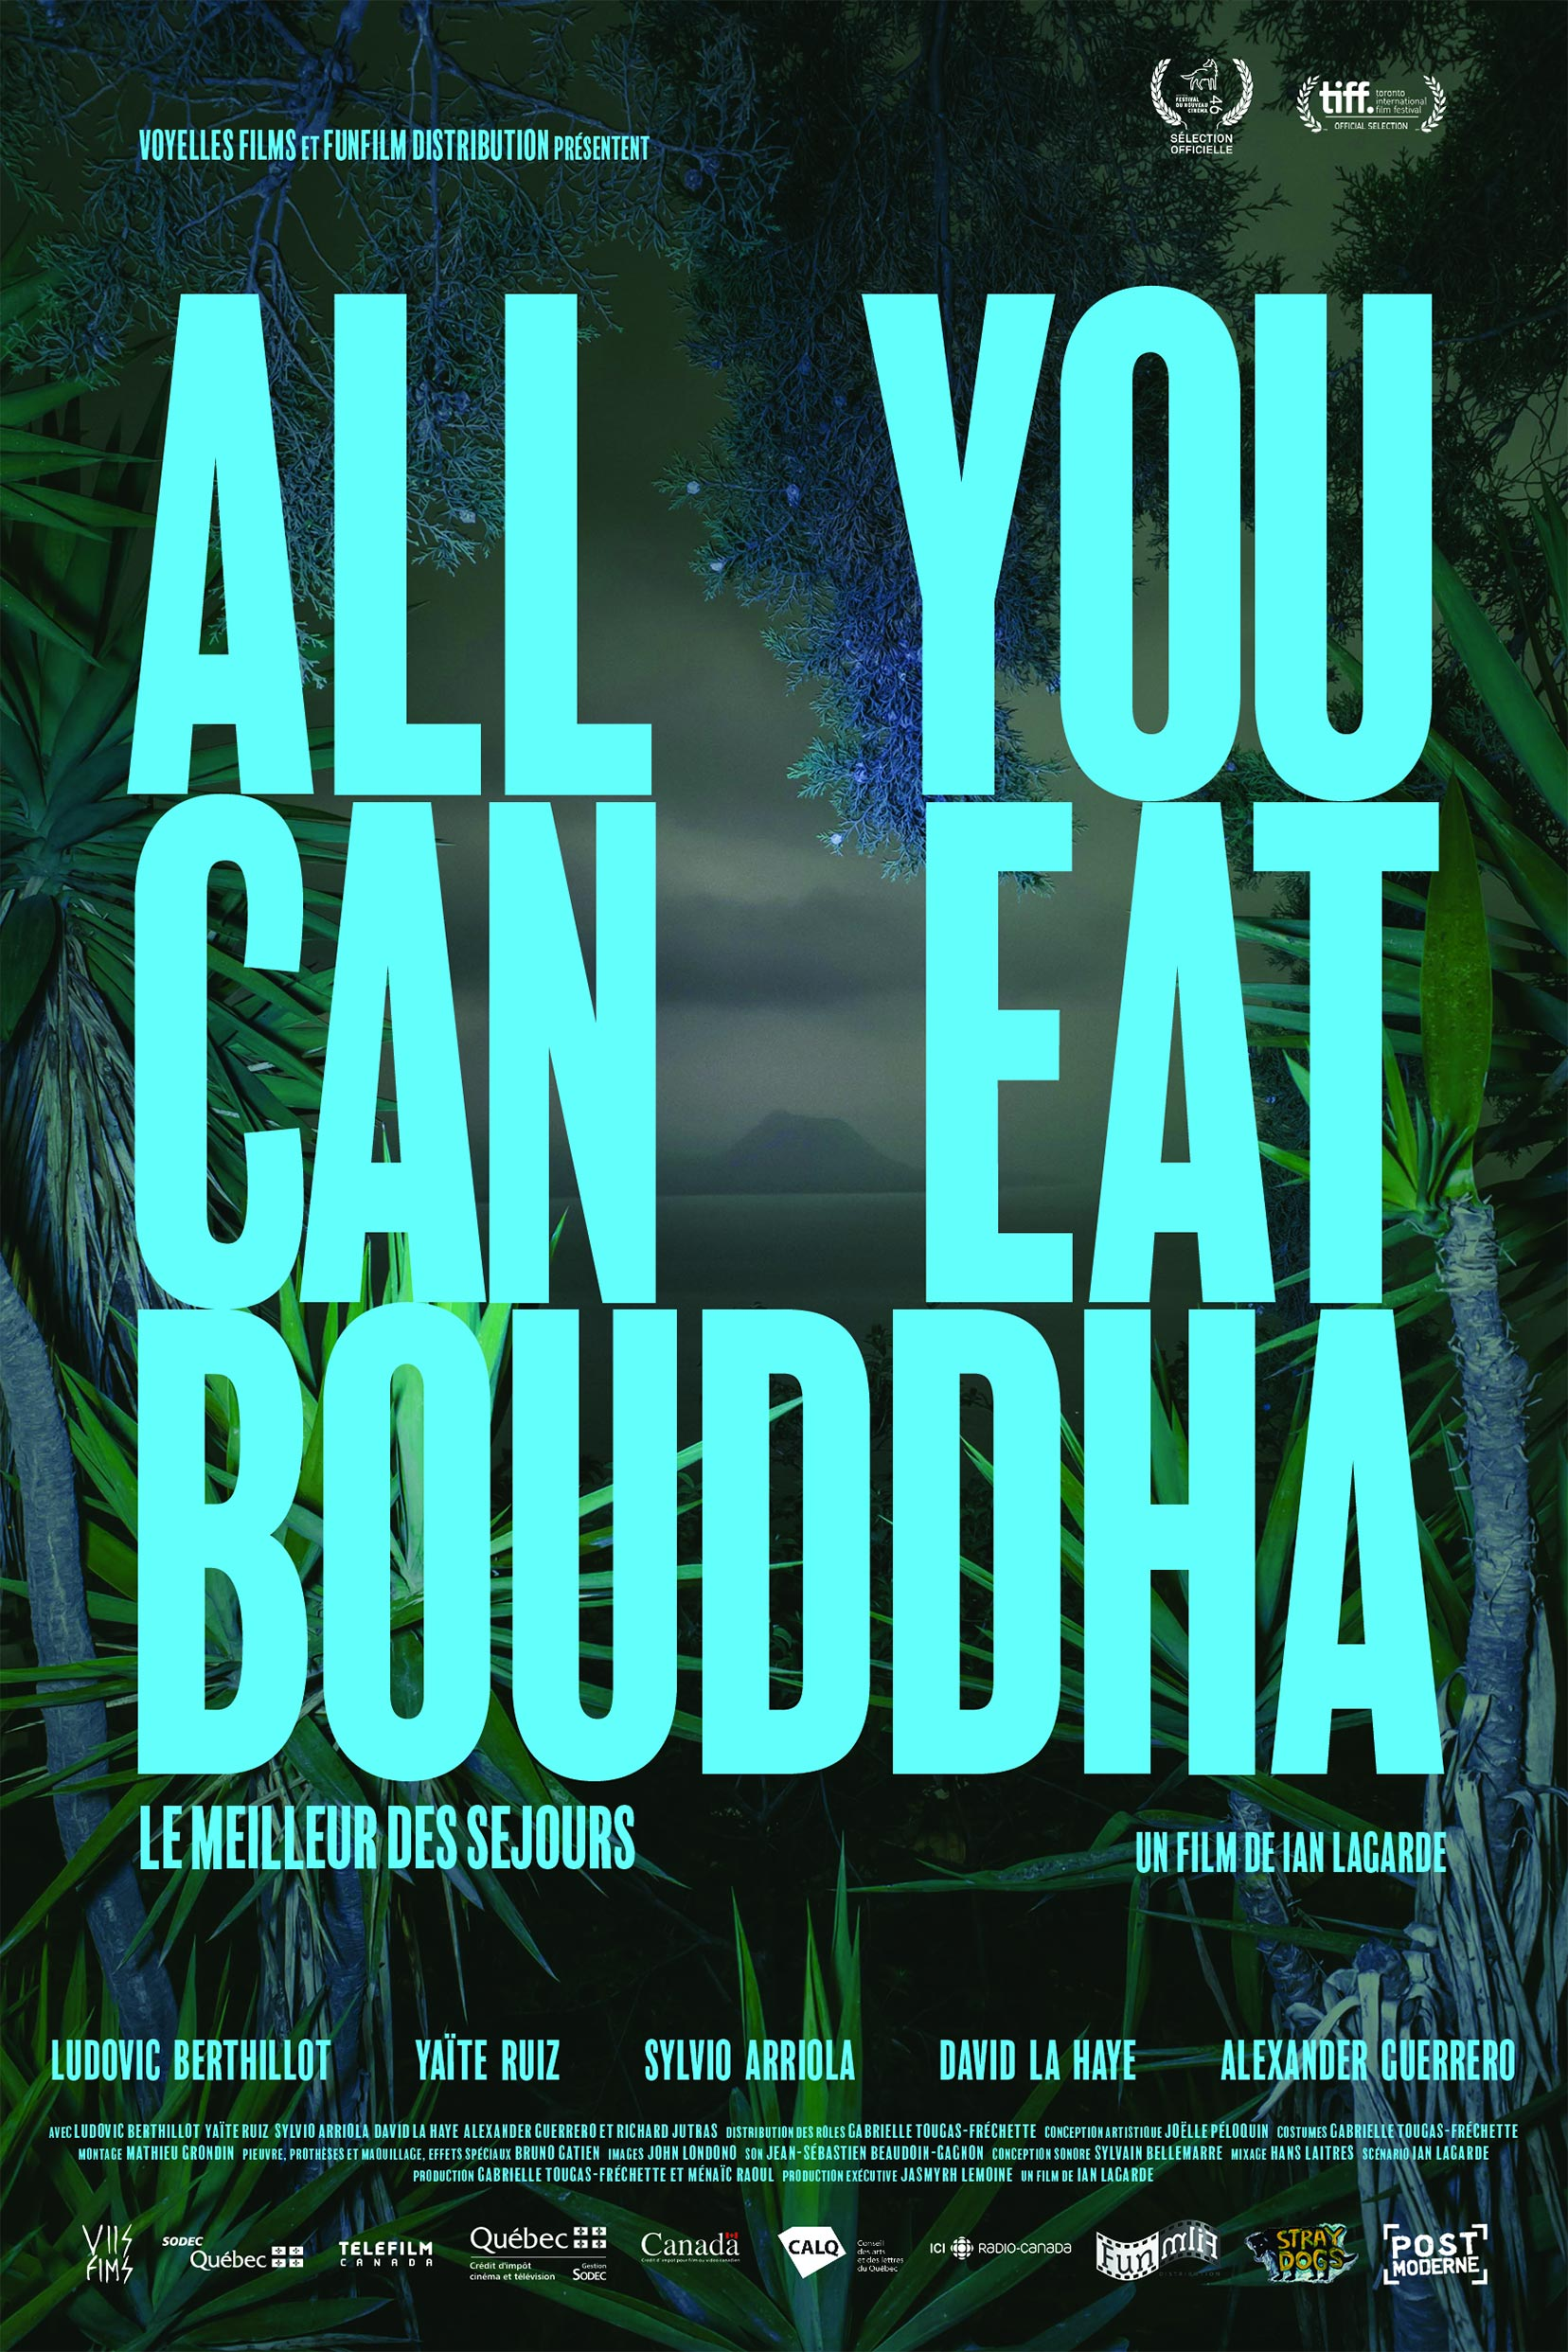 All You Can Eat Buddha Poster #1